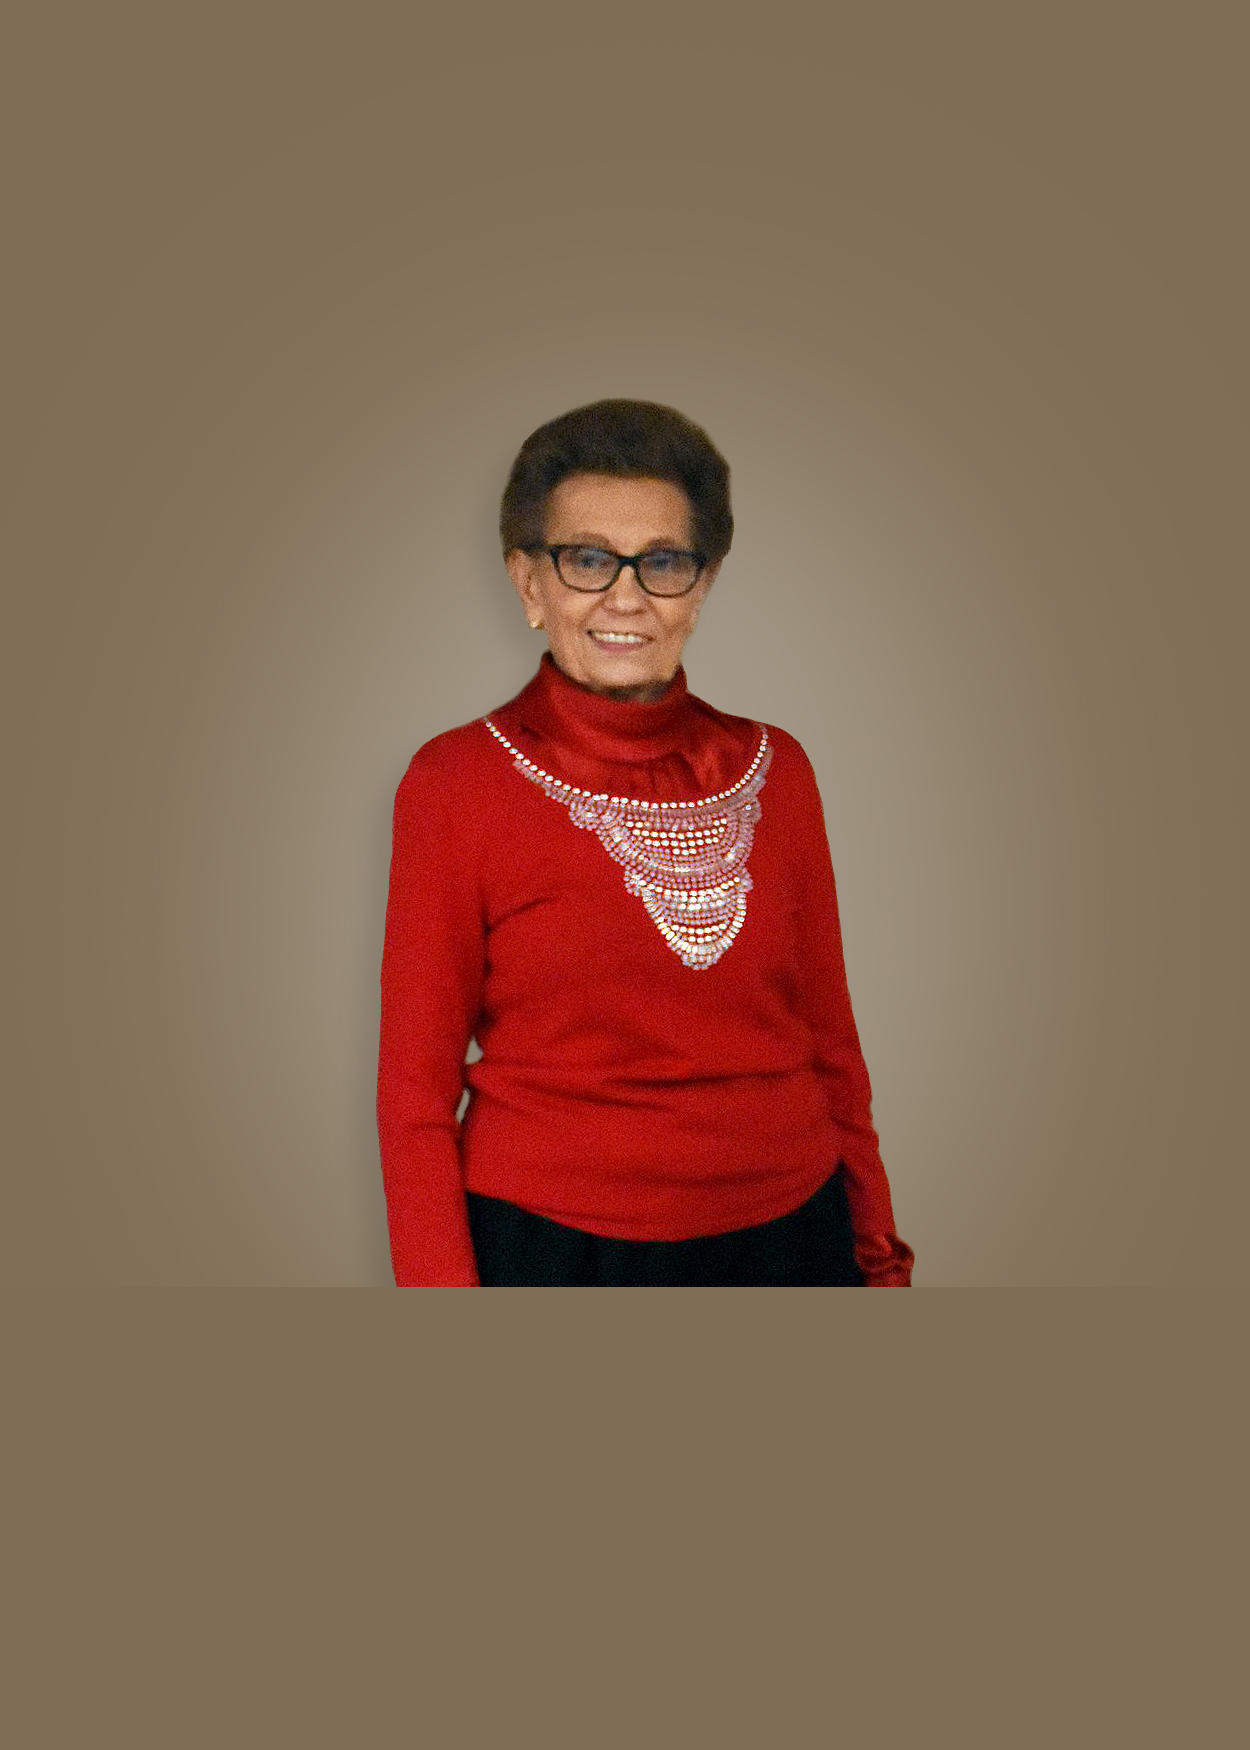 Marjorie A. Graf Honored with a Lifetime Achievement Award and as a Woman of the Month for March 2020 by P.O.W.E.R.